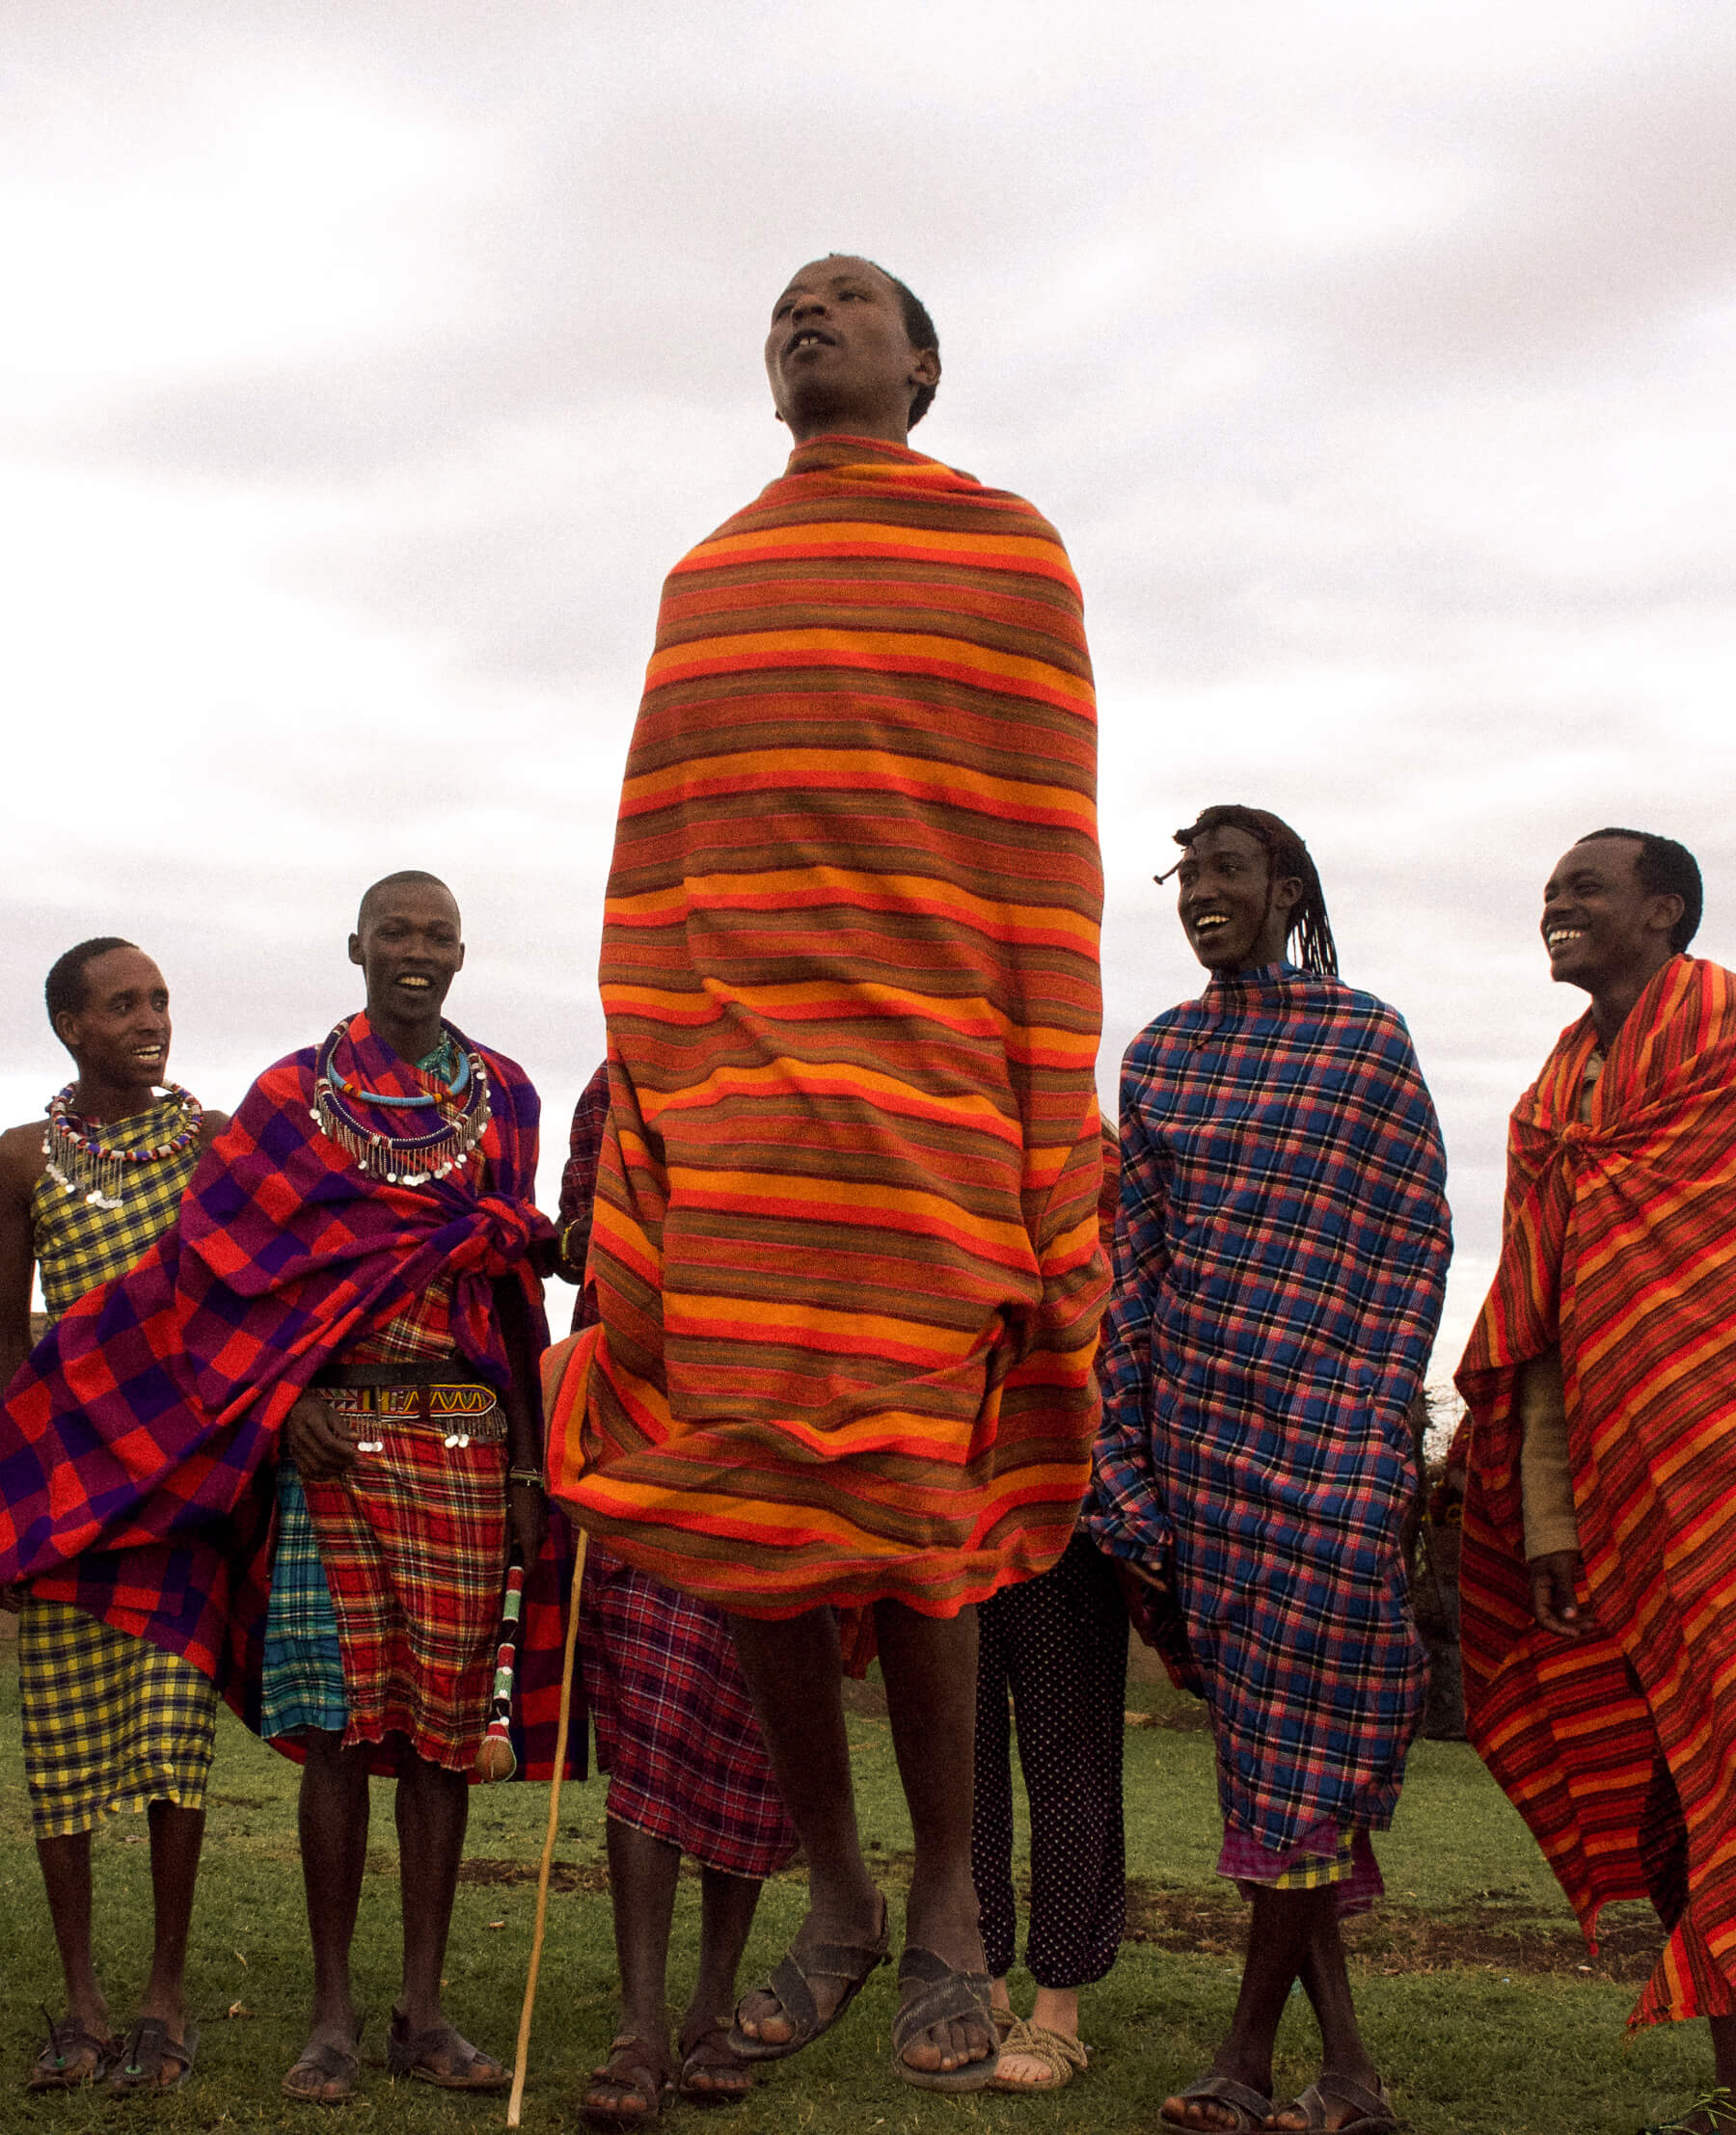 6 Maasai men demonstrating the Maasai dance - Highest jump wins the woman